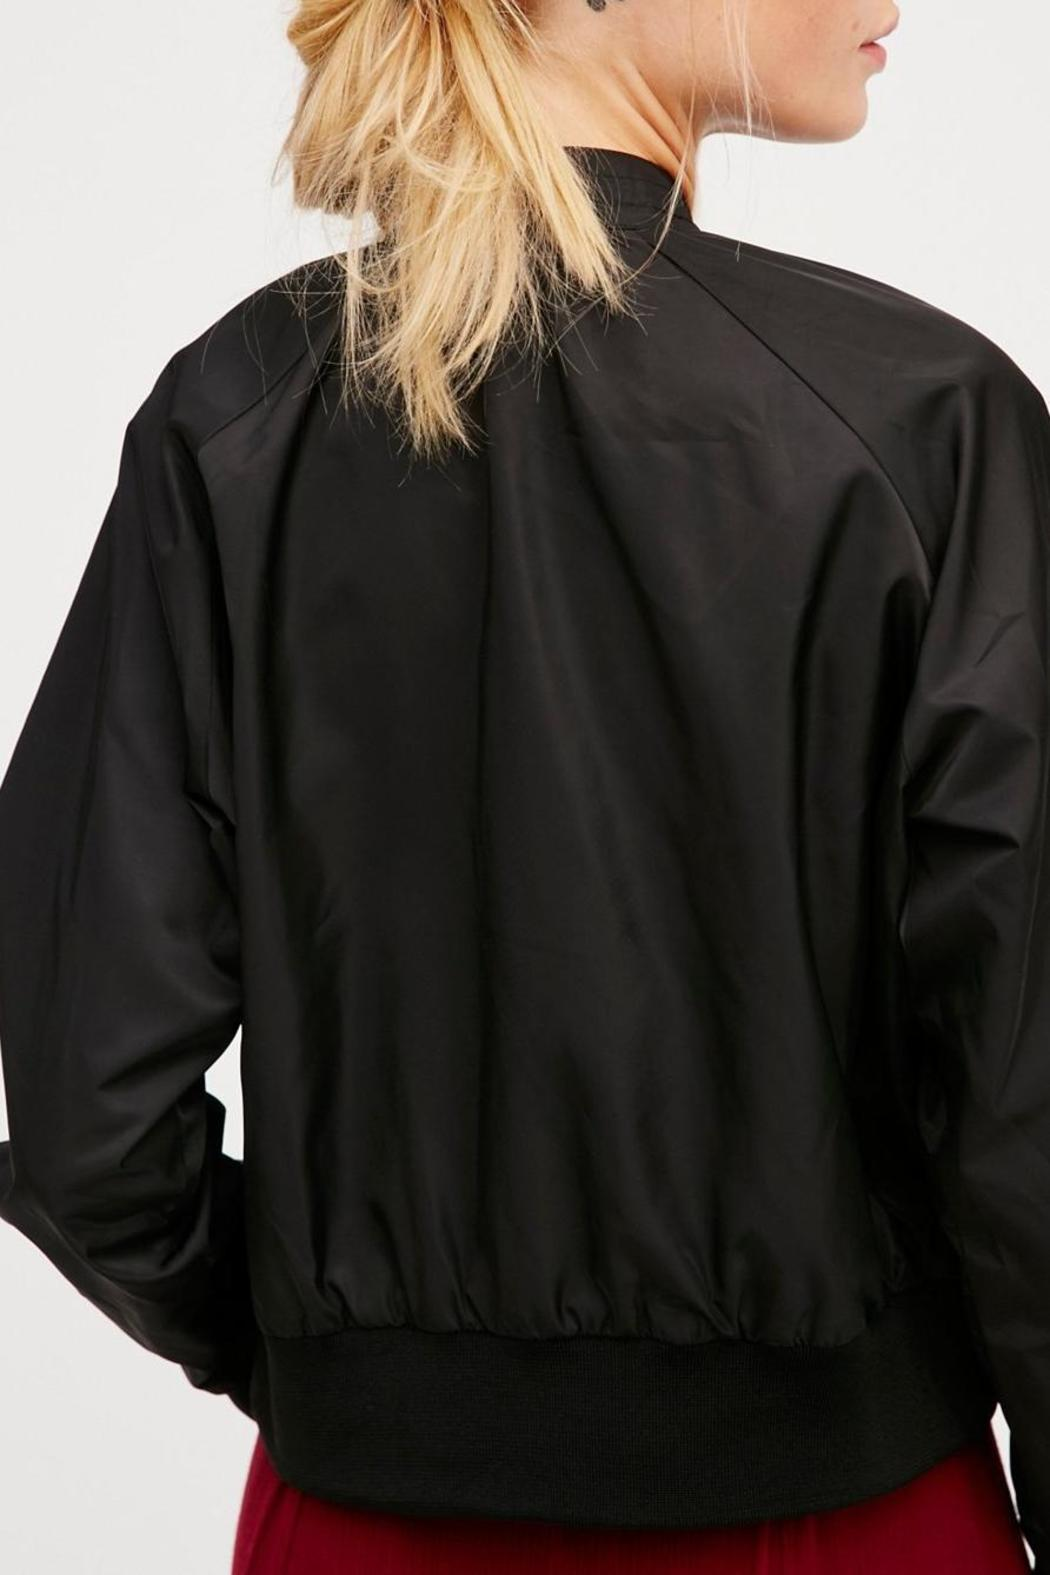 b1d1960aa Free People Midnight Bomber Jacket from Cleveland by April Snow ...